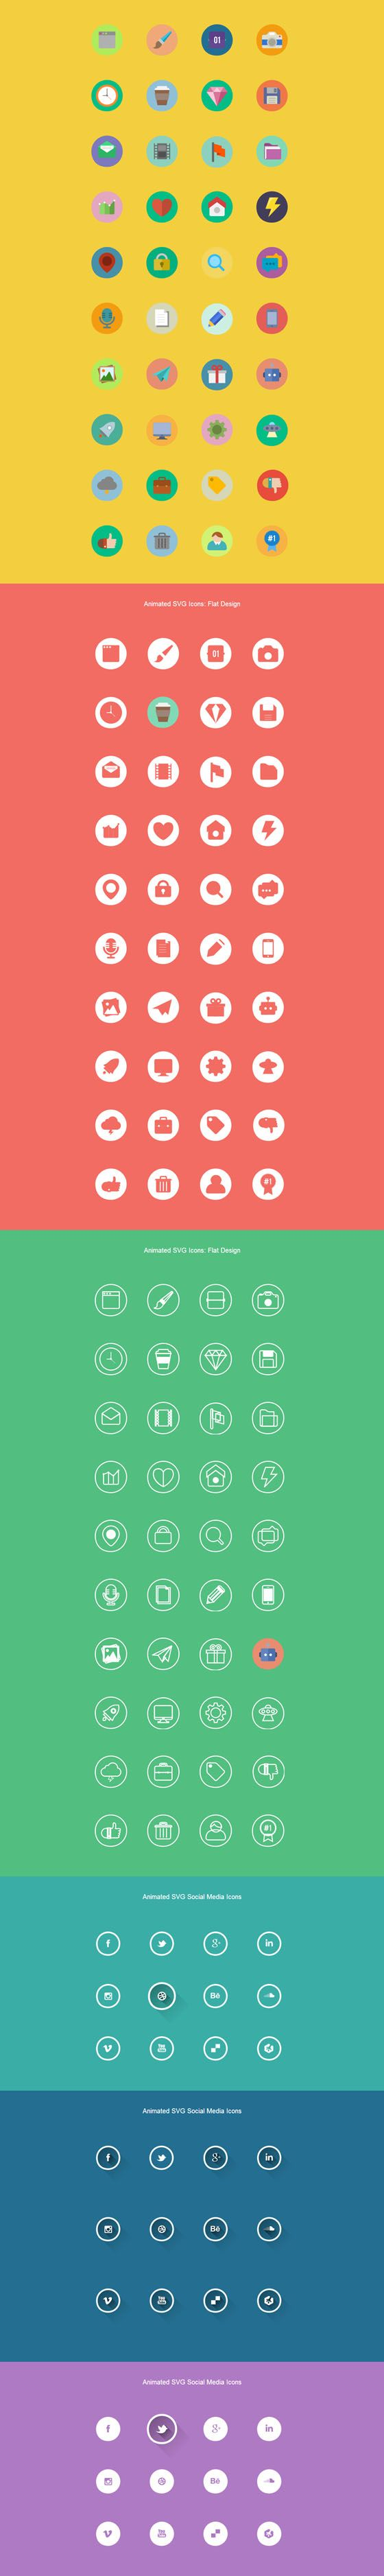 Free Download : 150+ Free Animated Flat SVG Icons | A